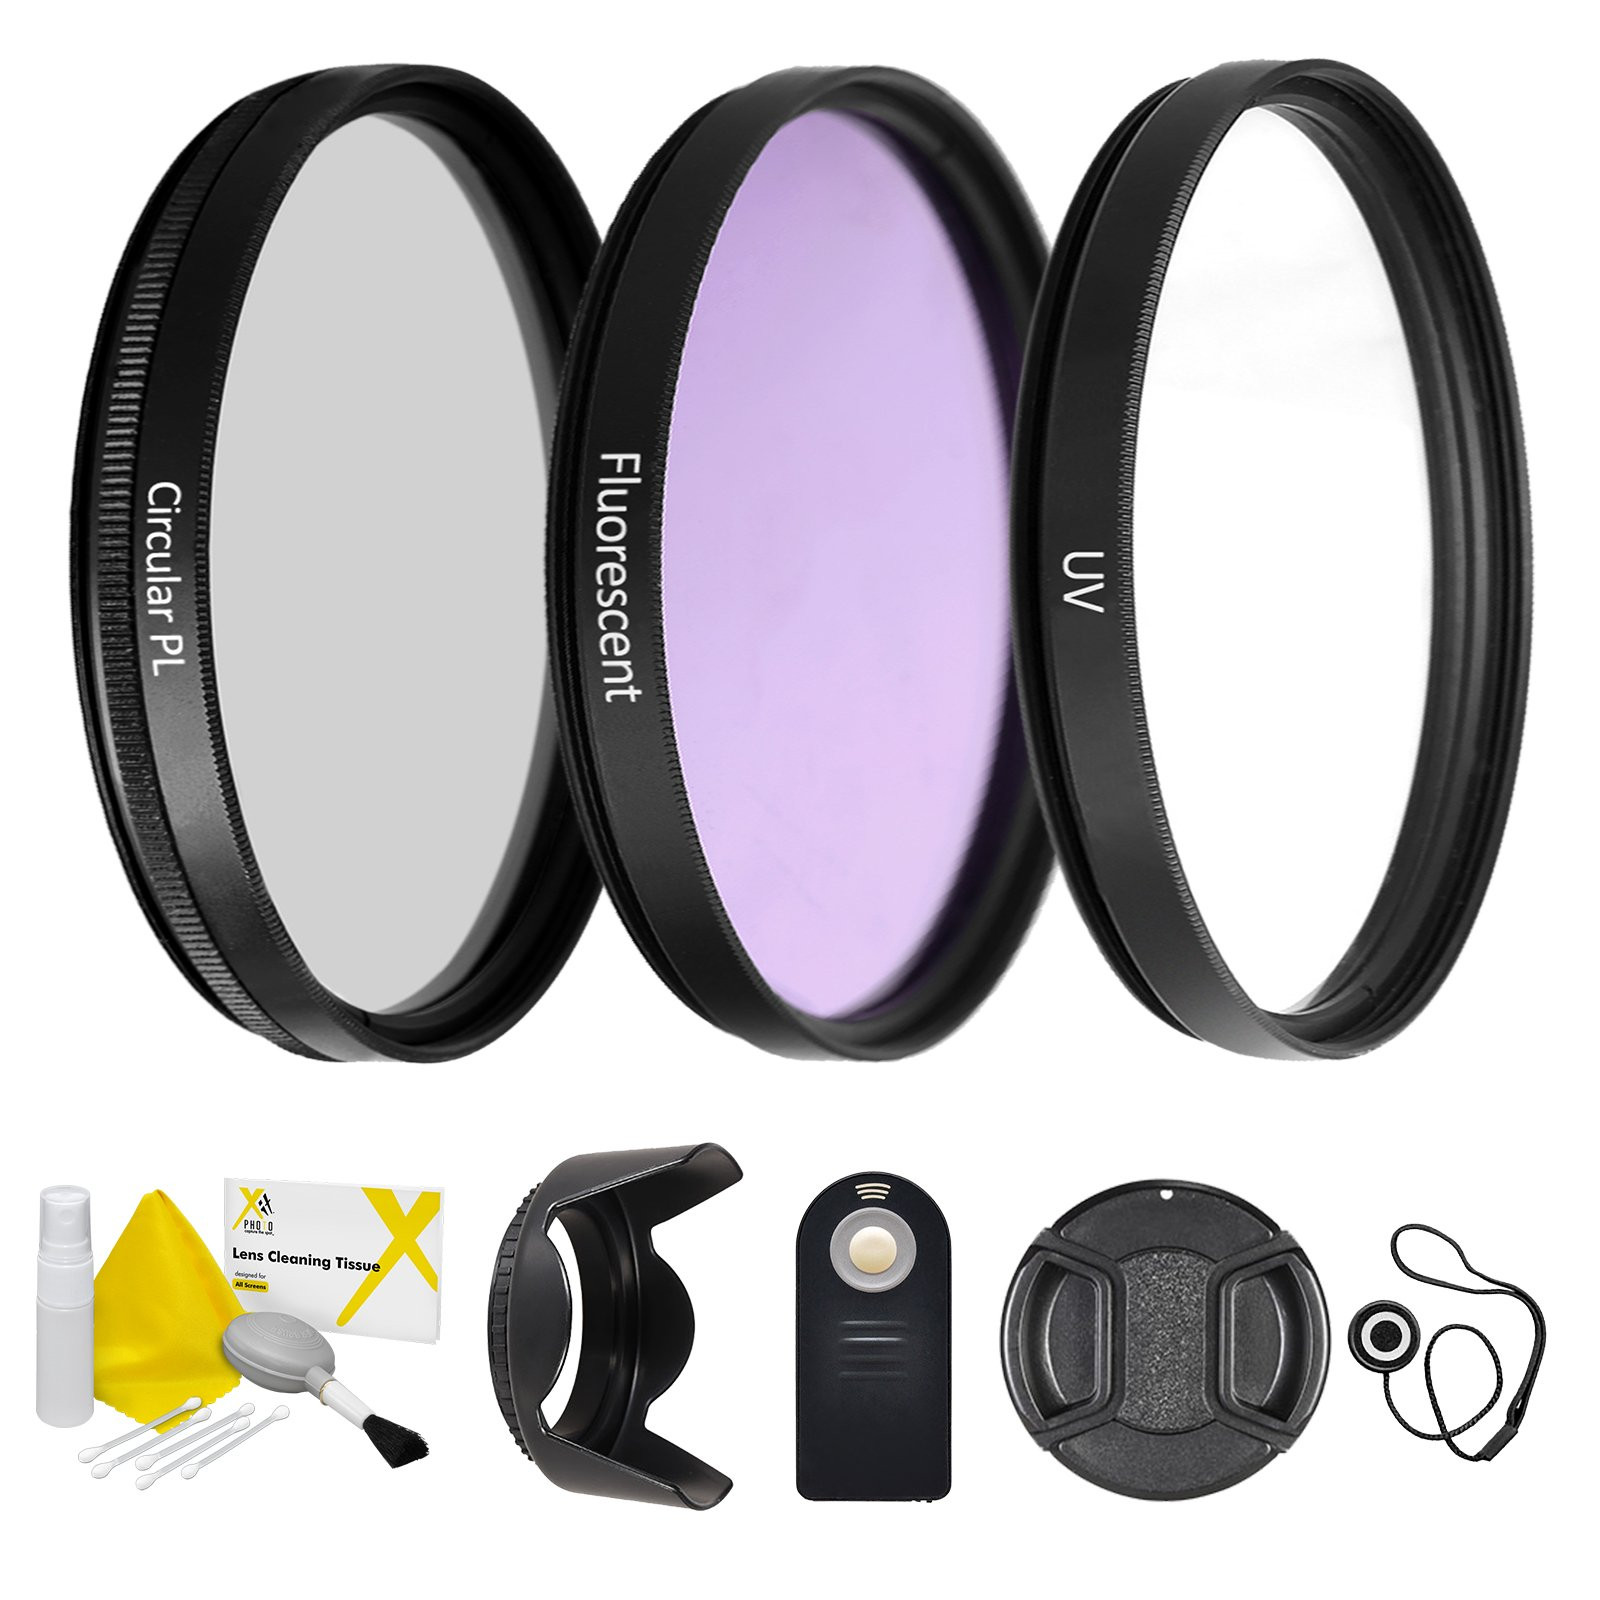 55mm UltraPro Professional Filter Bundle for Lenses with a 55mm Filter Size - Includes Filters, Remote, Lens Hood & More by UltraPro